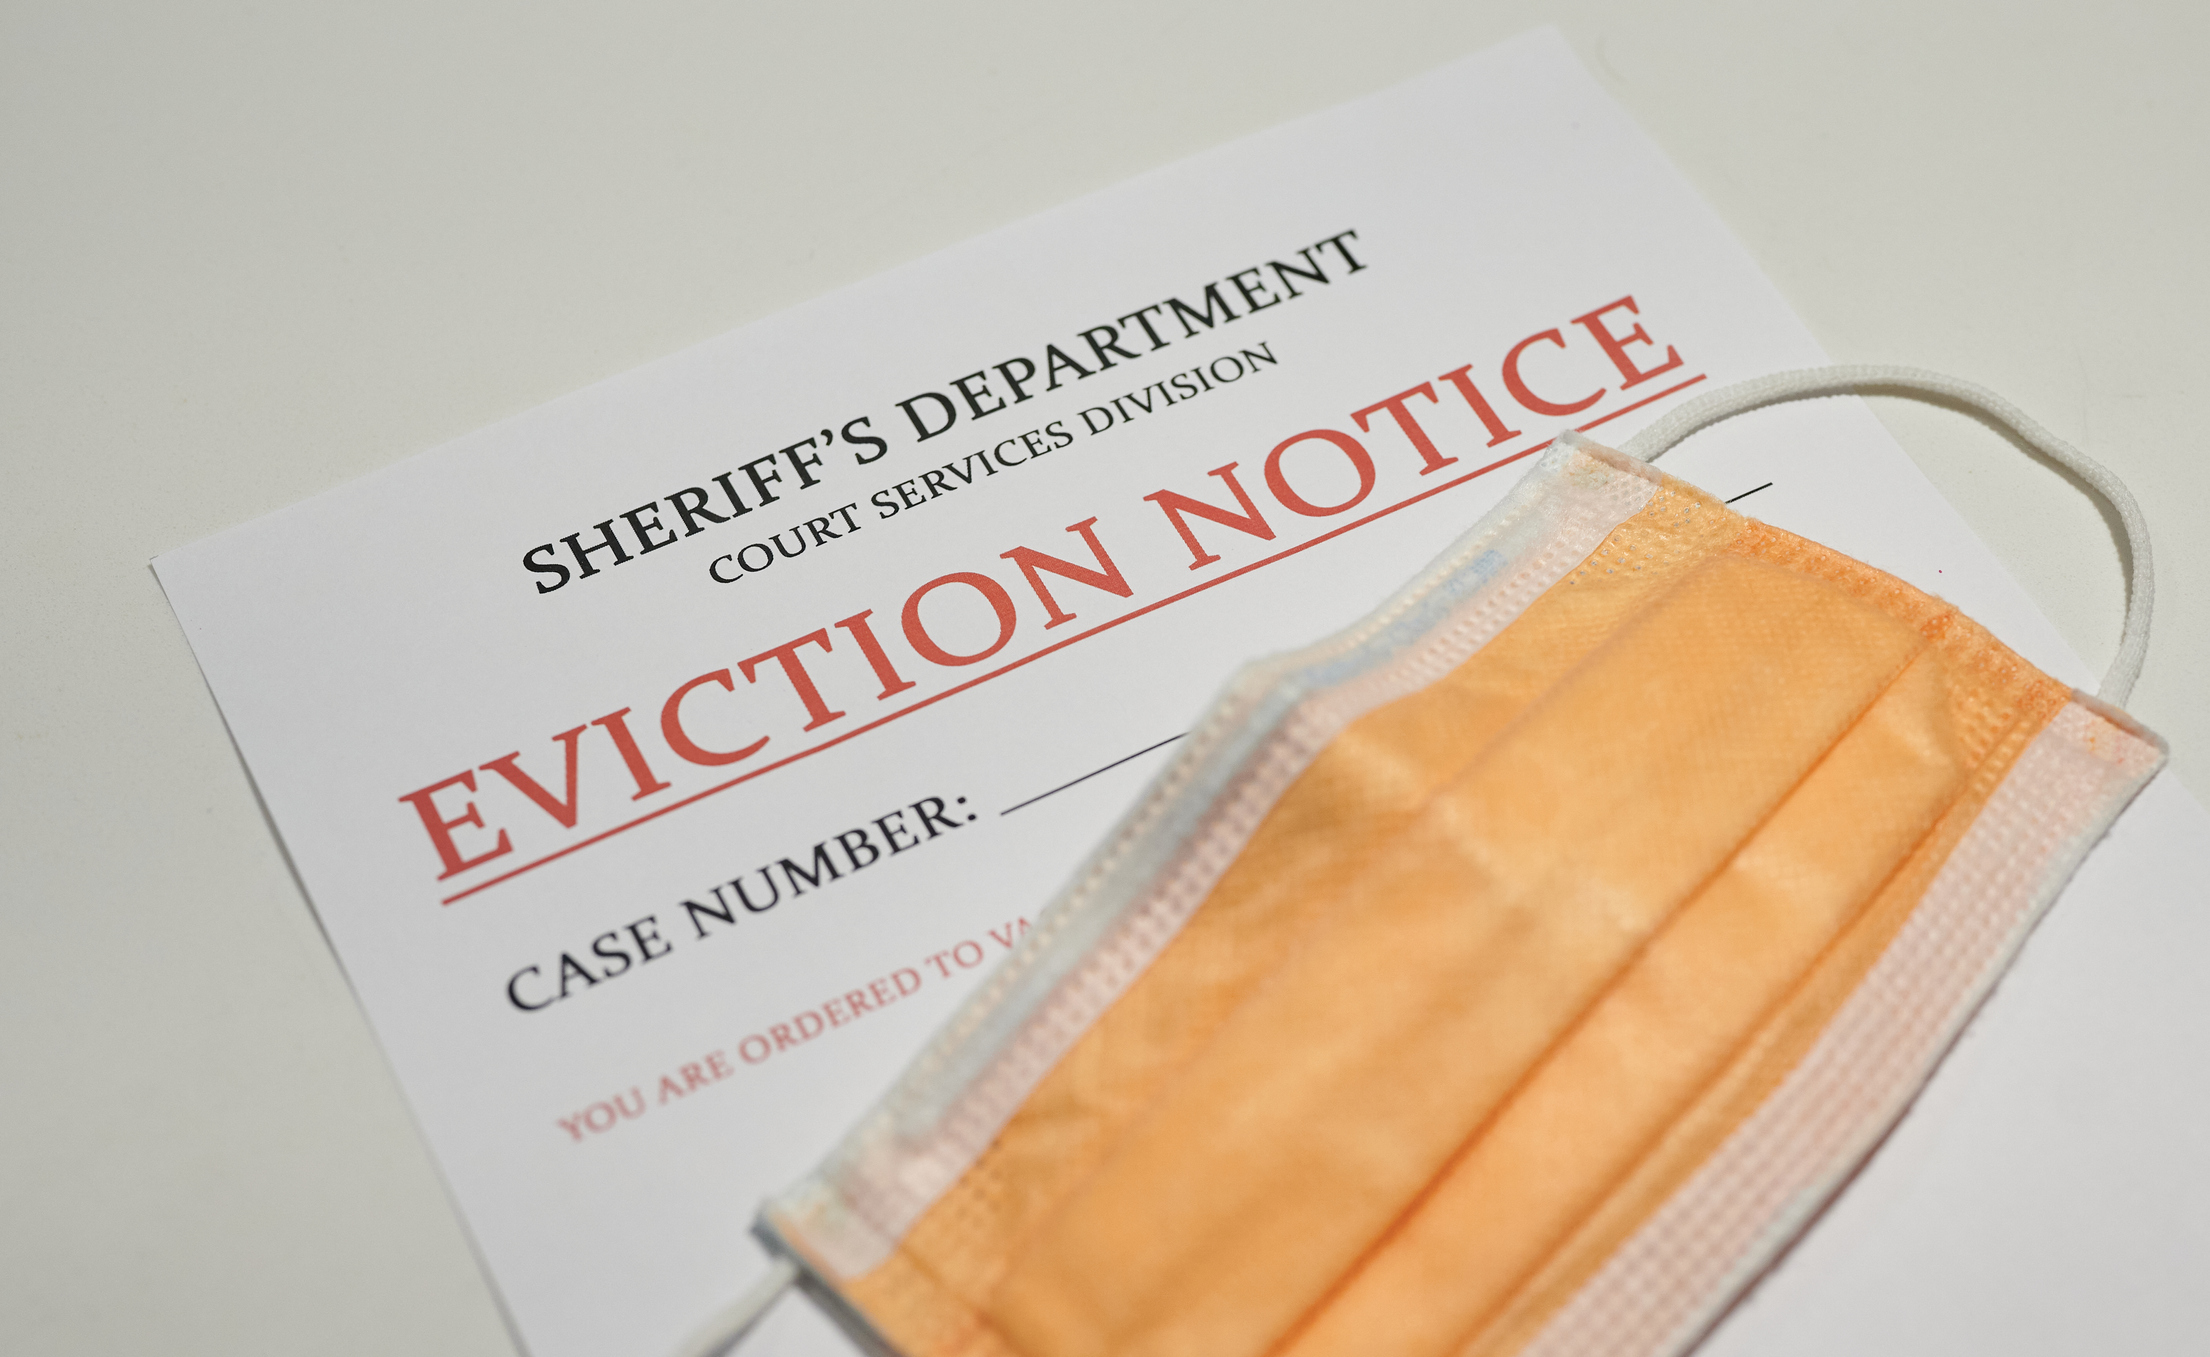 Yellow facial mask laying on top of the eviction note from sheriff's department